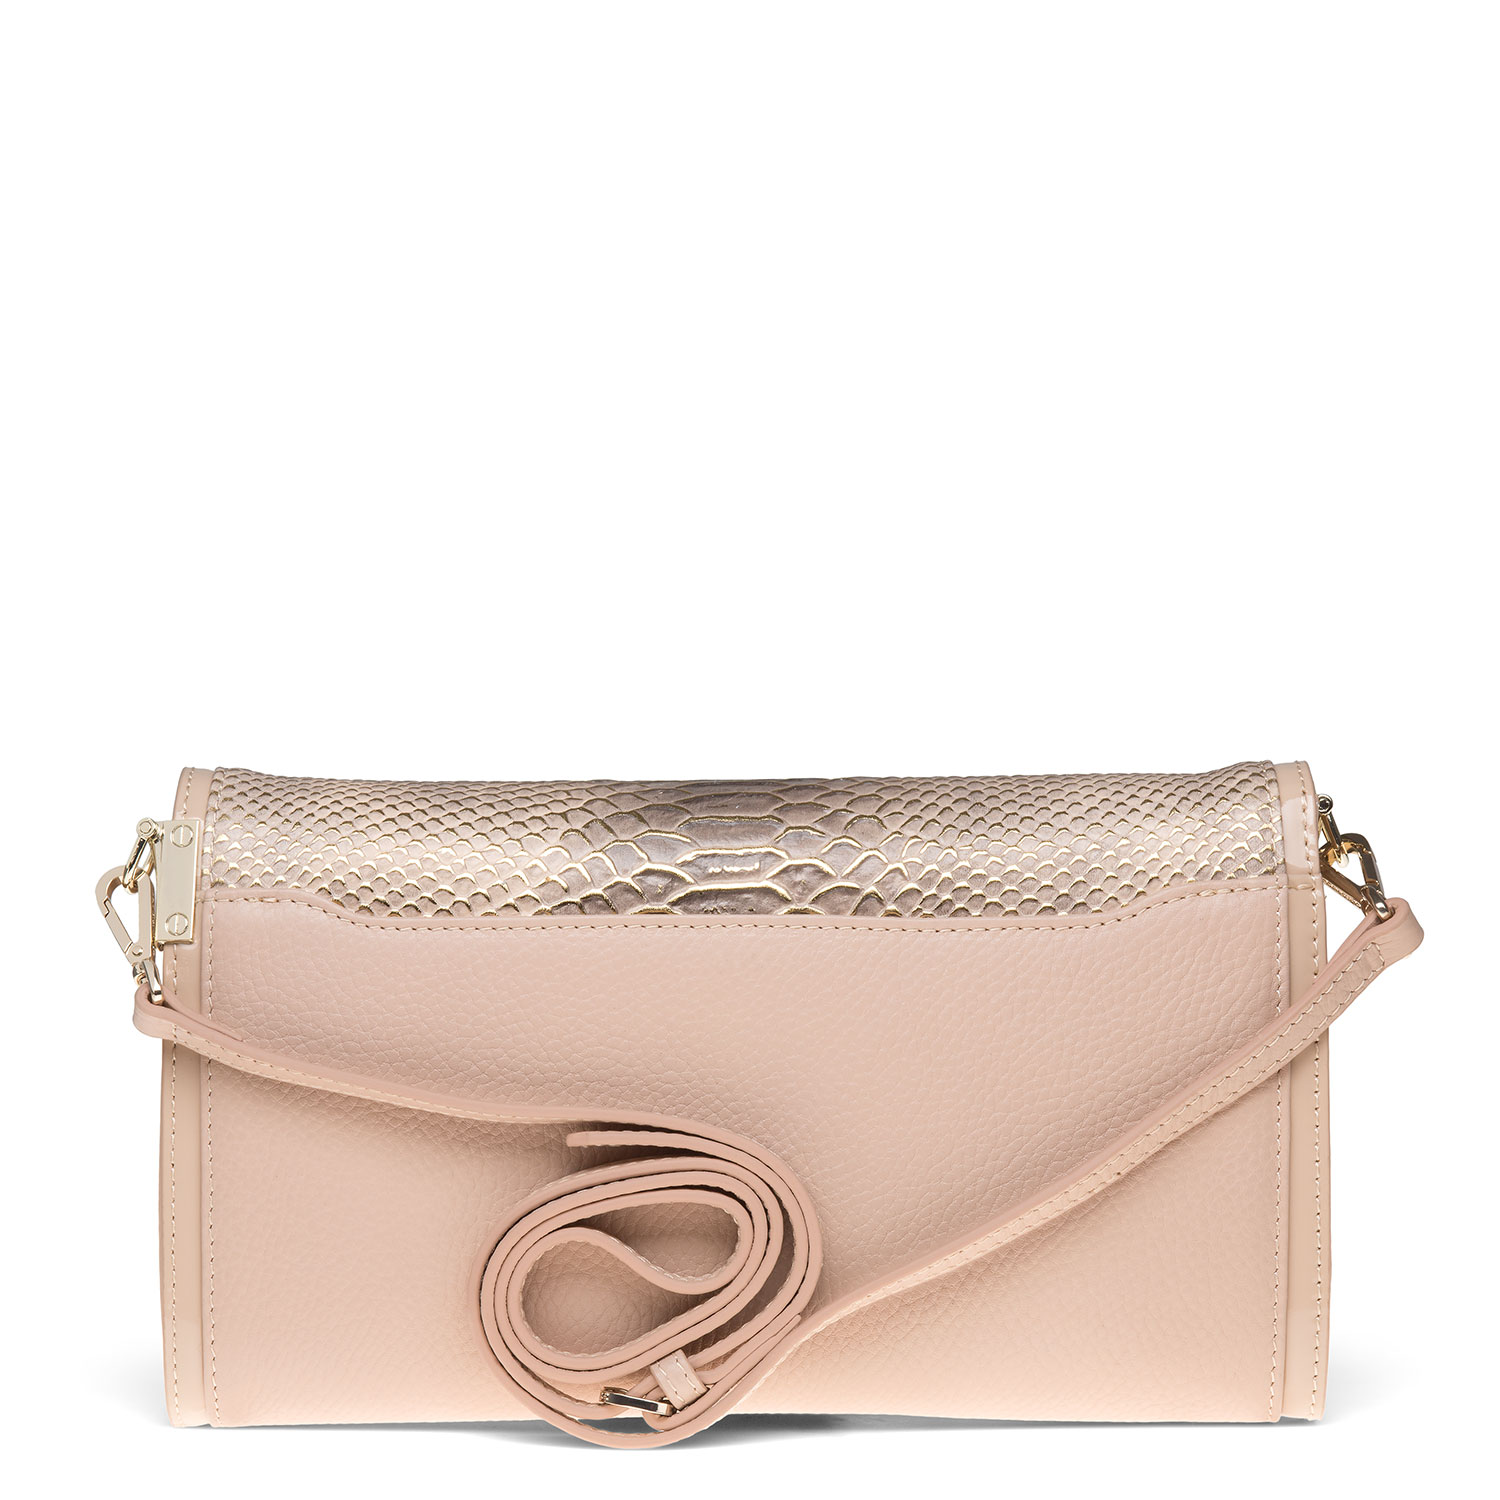 Women's bag CARLO PAZOLINI PS-N1166-3